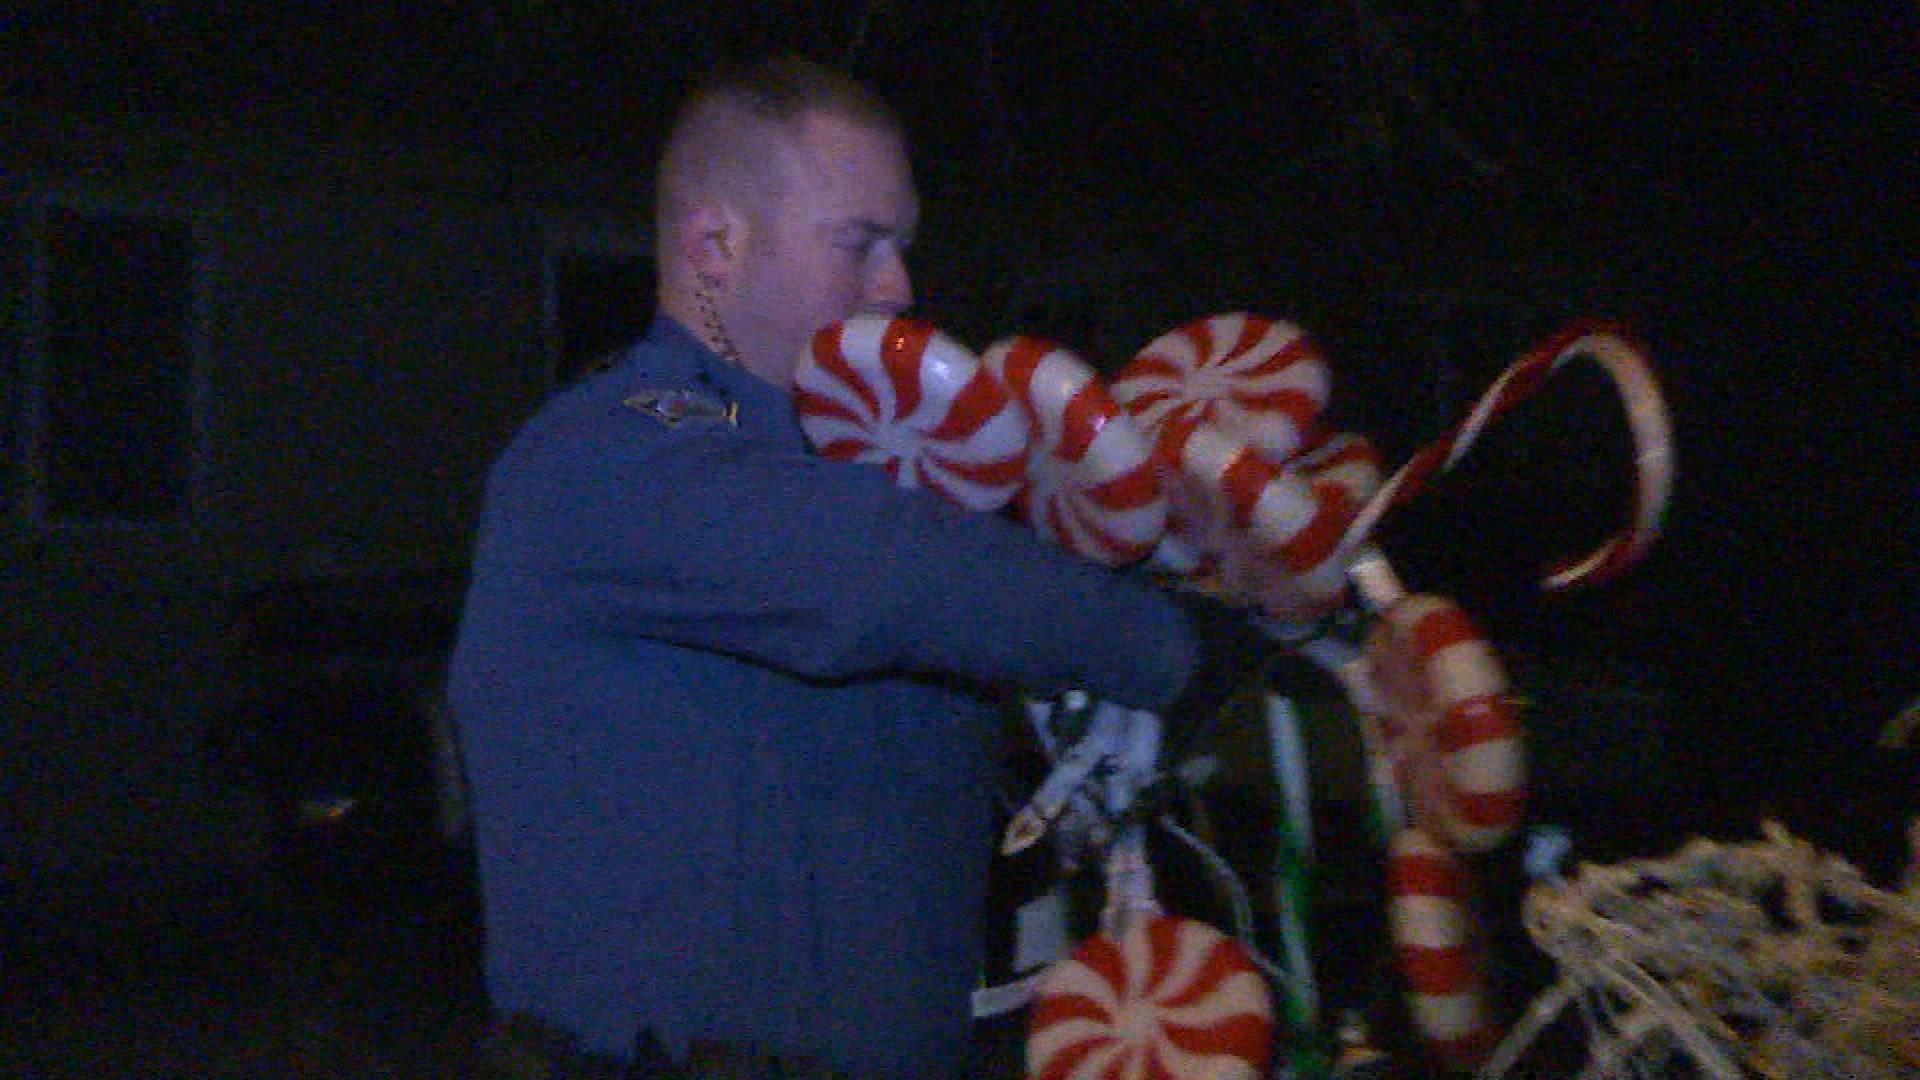 Law enforcement removes some of the decorations. (credit: KKTV)